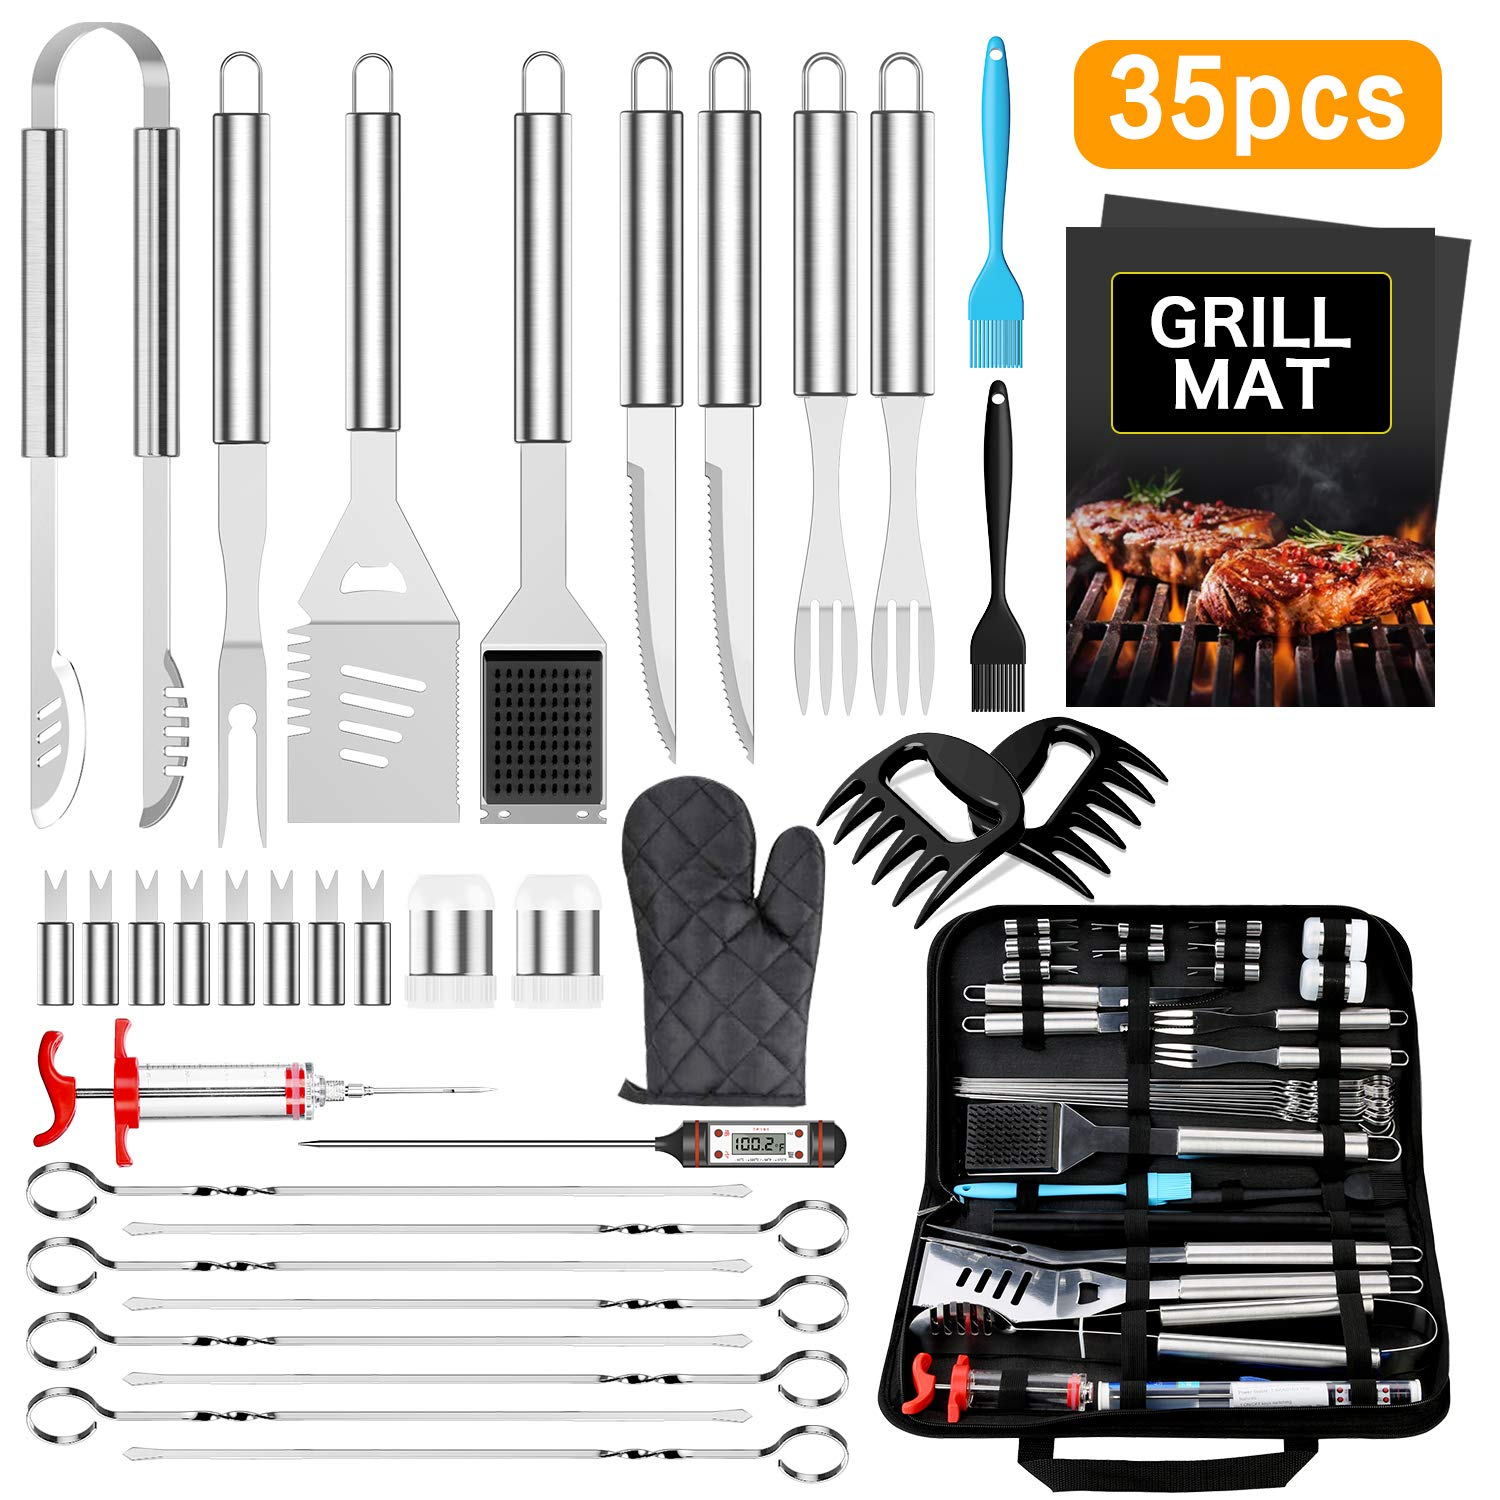 BBQ Grill Accessories BBQToolsSet, AISITIN 35 PCS BBQ Grilling Accessories, Stainless Steel Grill Tools Set for Smoker, Camping, Kitchen, Fathers Day Birthday Gift Barbecue Grill Accessories for Men